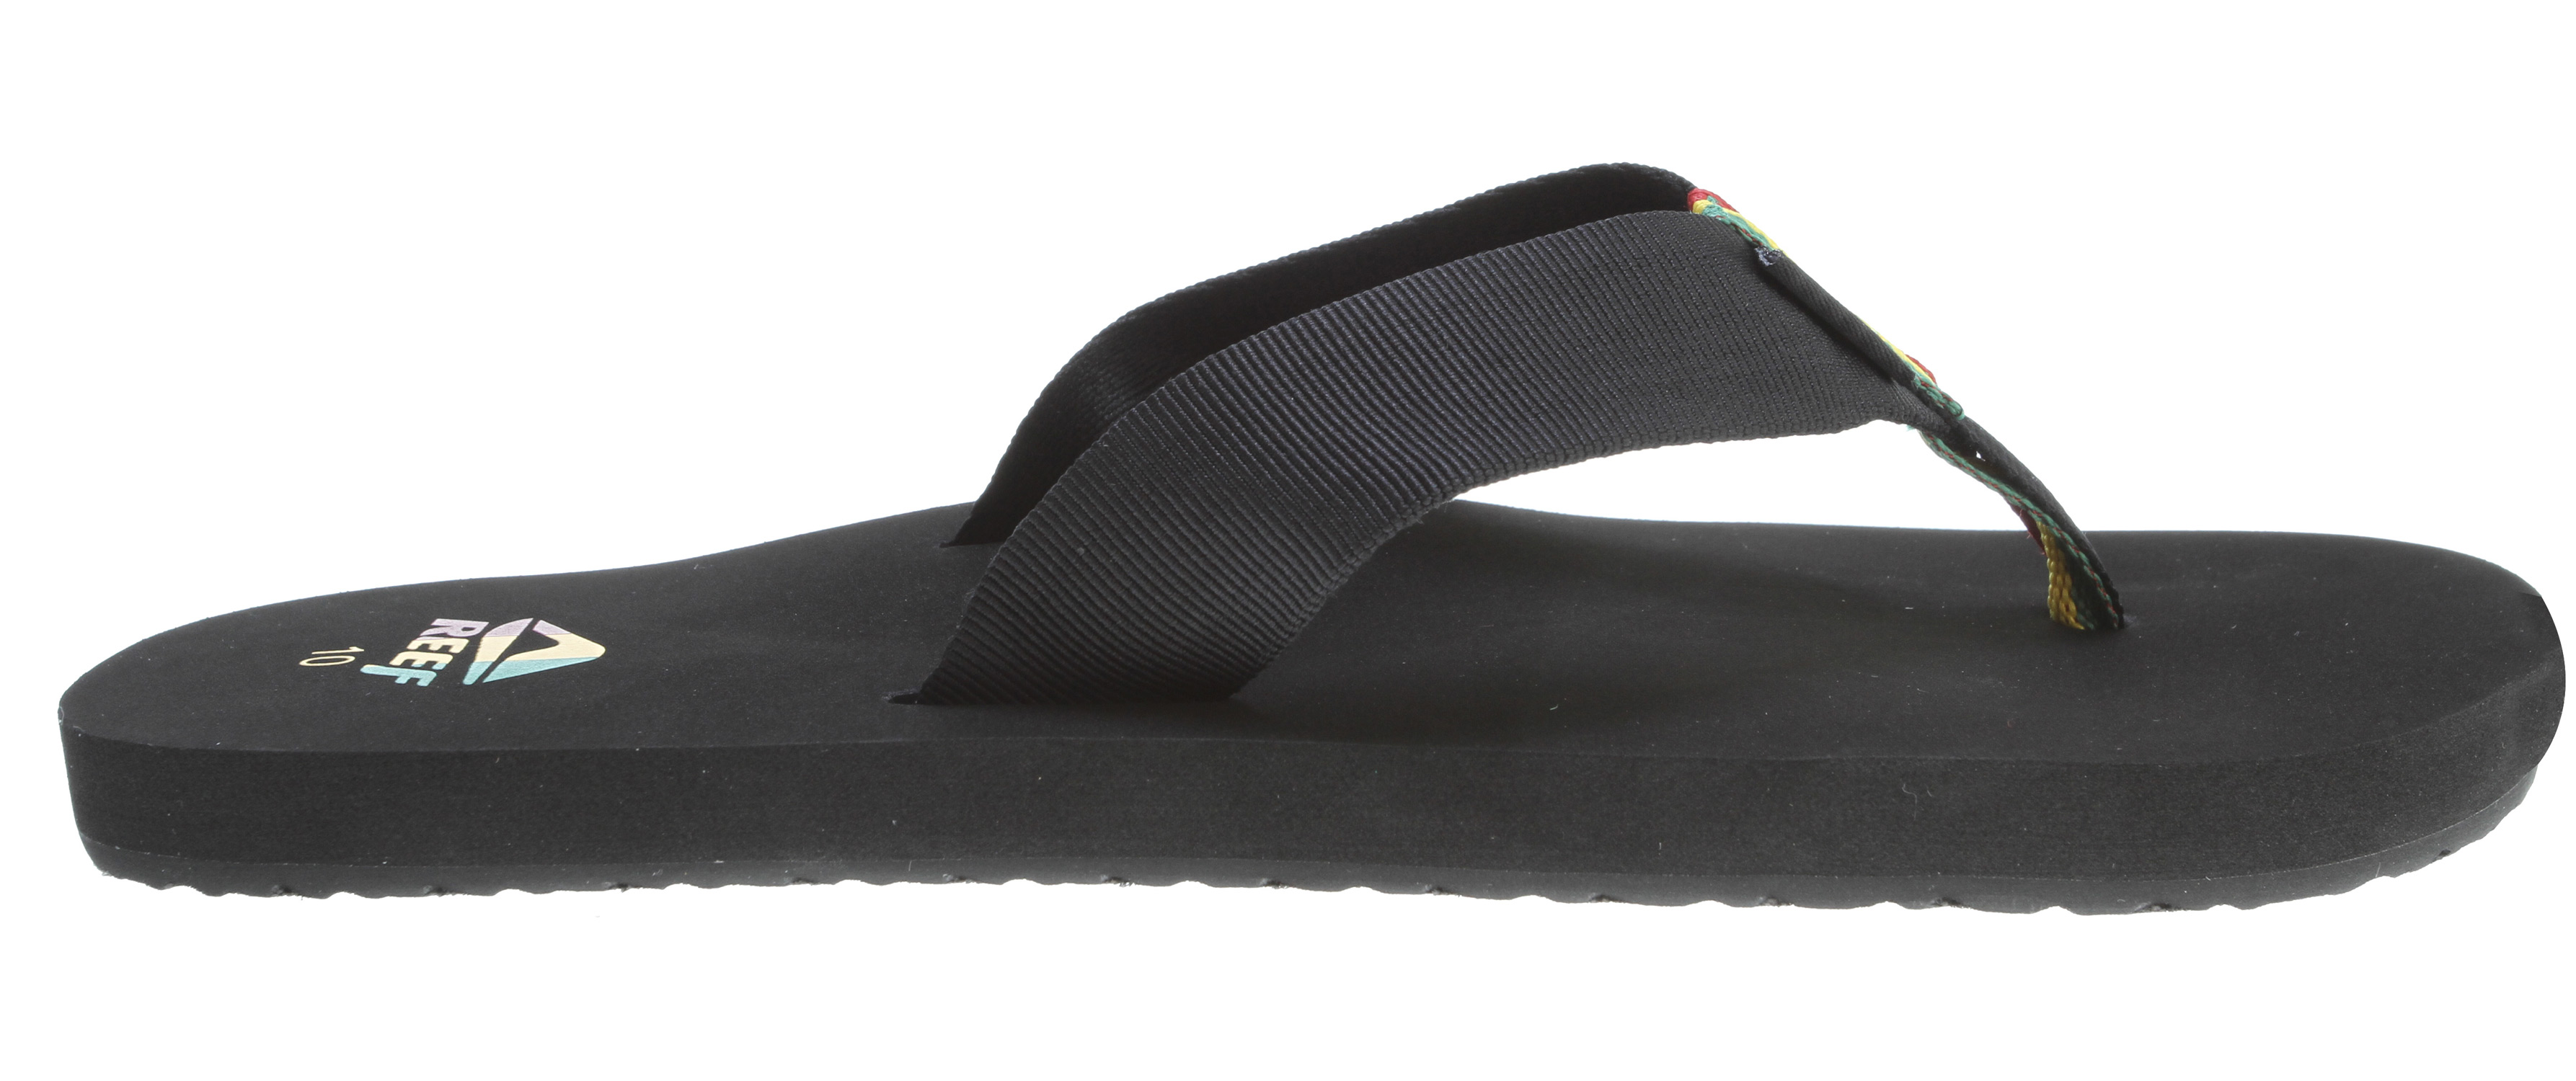 Surf Key Features of the Reef Todos Sandals: New basic perfect for every day at the beach Classic, comfortable, woven upper straps Soft eva footbed with anatomical arch support High density eva outsole - $13.95